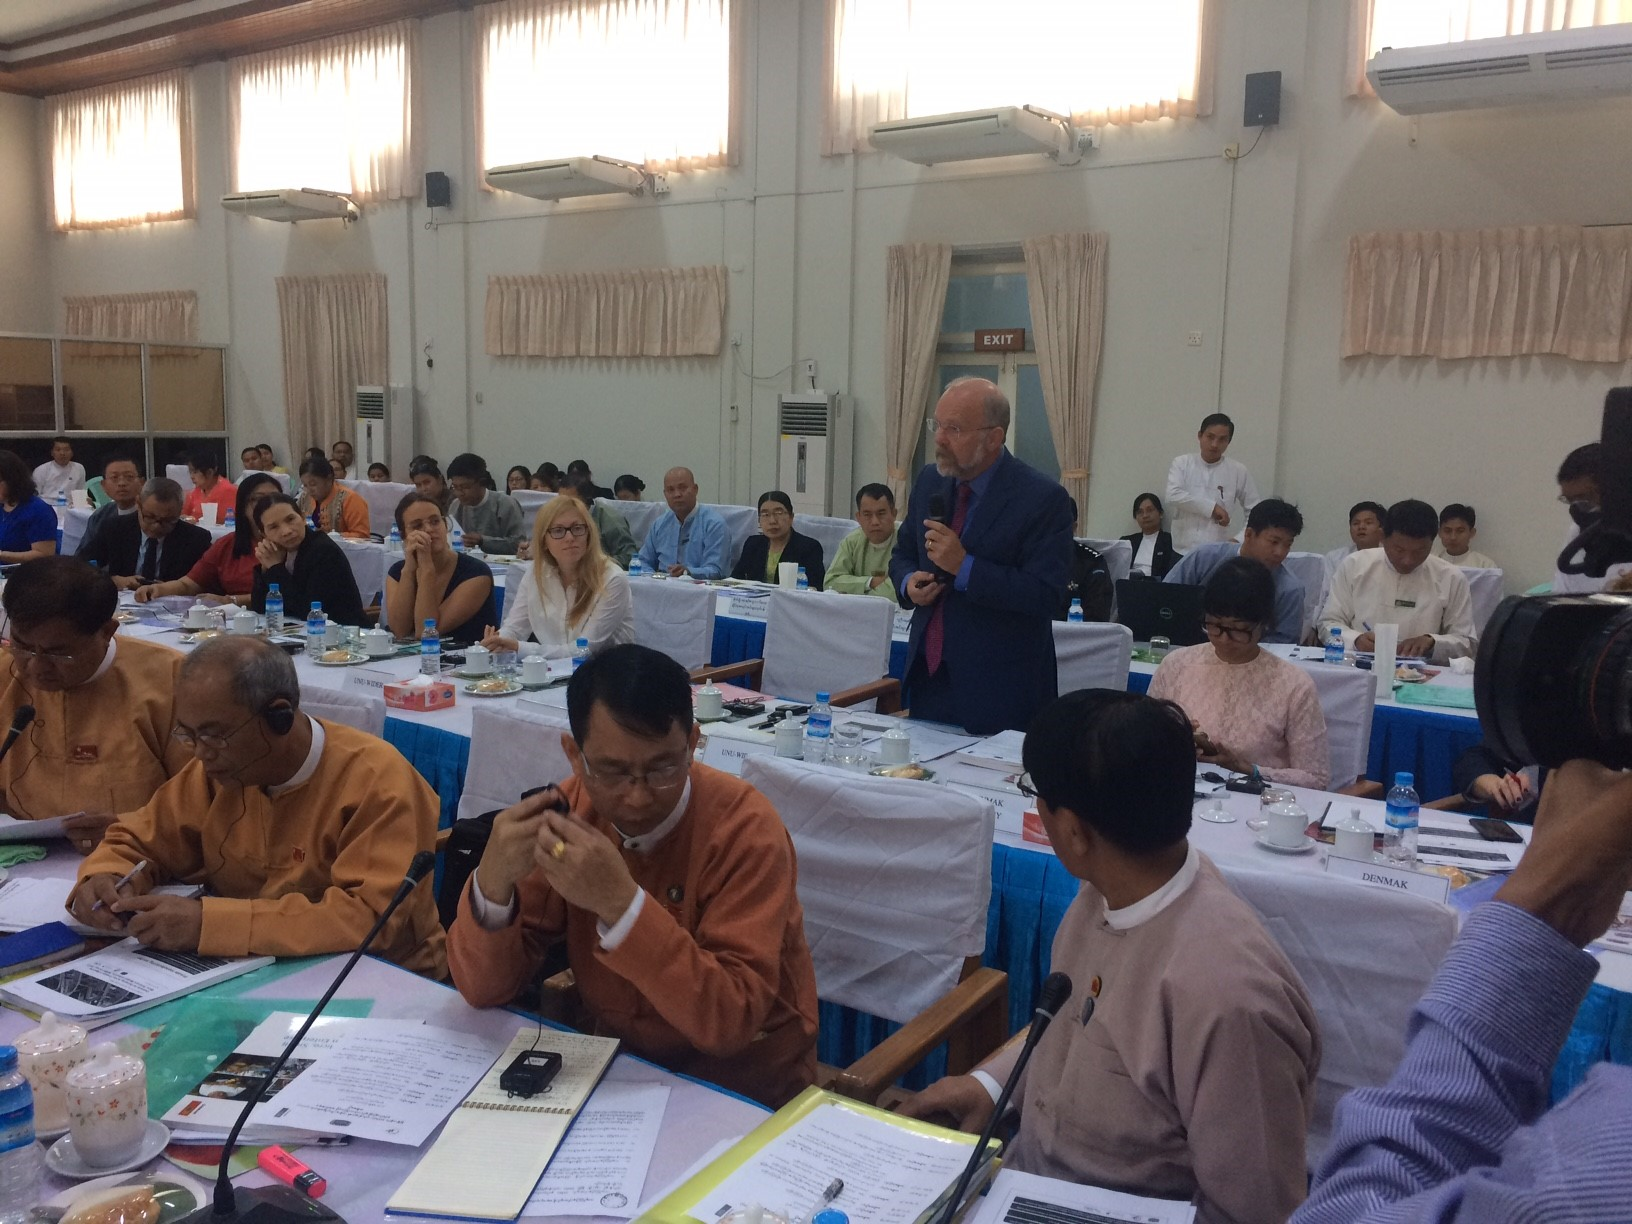 Finn Tarp speaking at survey findings ceremony in Myanmar.